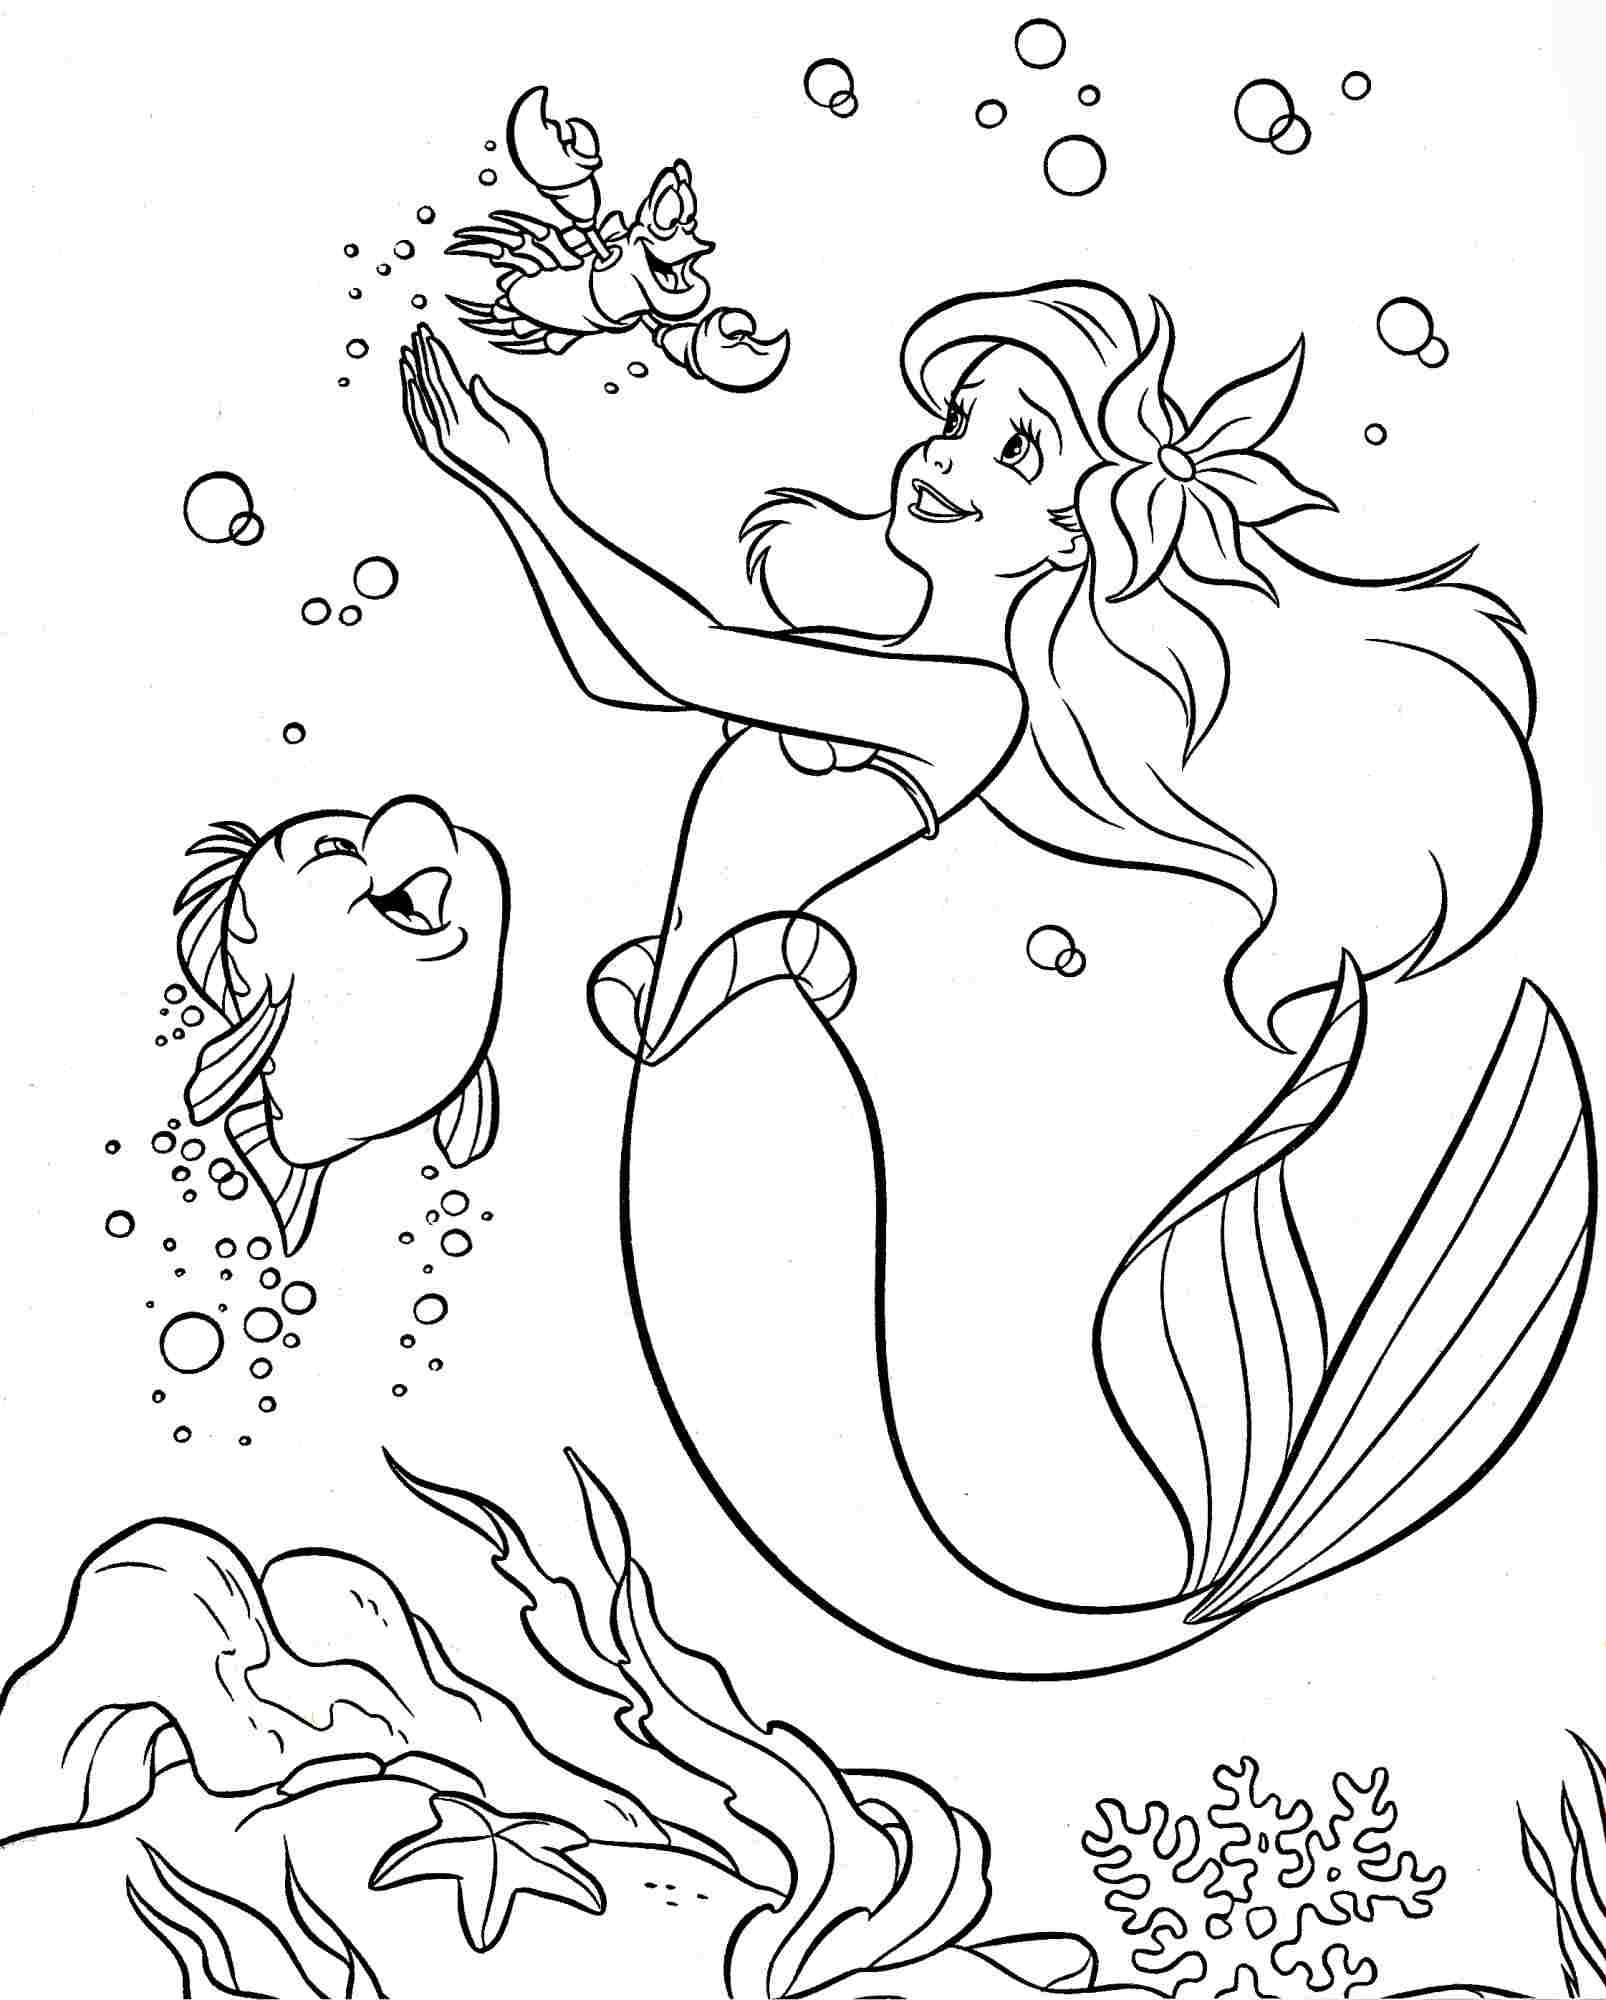 Colouring Pages Coloring Pages Disney Princess Little Mermaid Ariel For Kids Fre Ariel Coloring Pages Free Disney Coloring Pages Disney Princess Coloring Pages